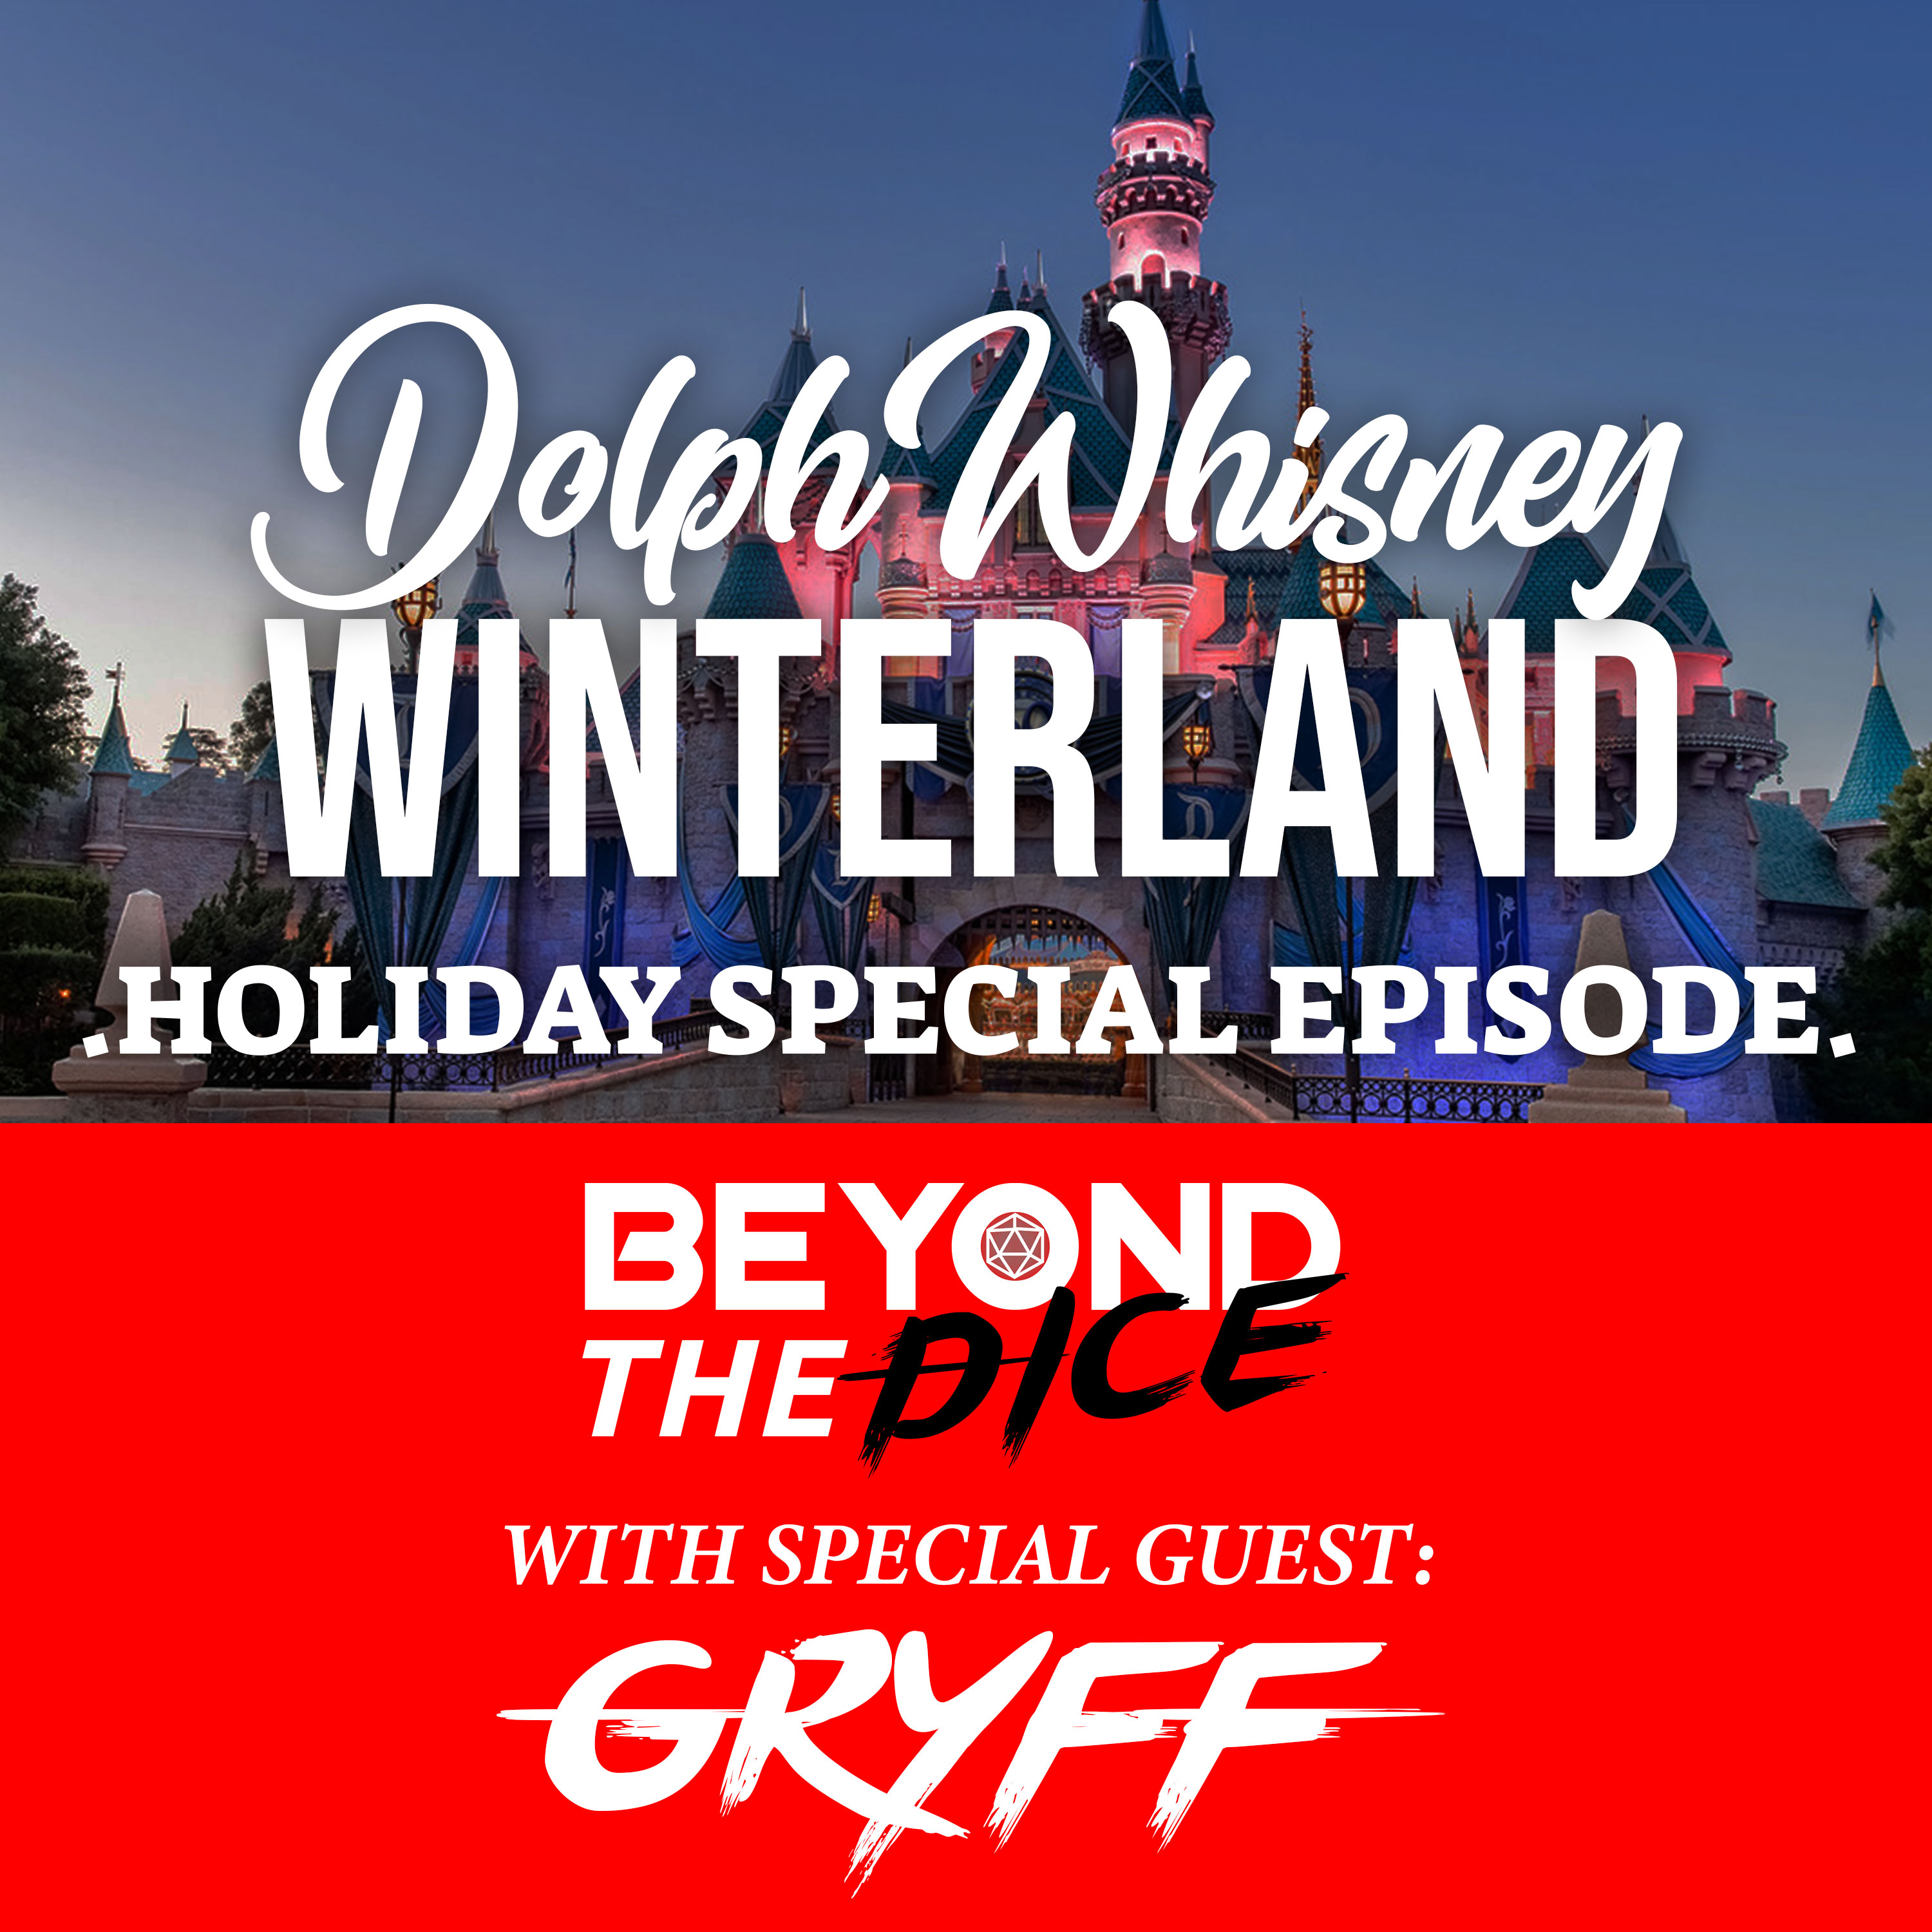 2018 Holiday Special ft. Gryff. Dolph Whisney WinterLand